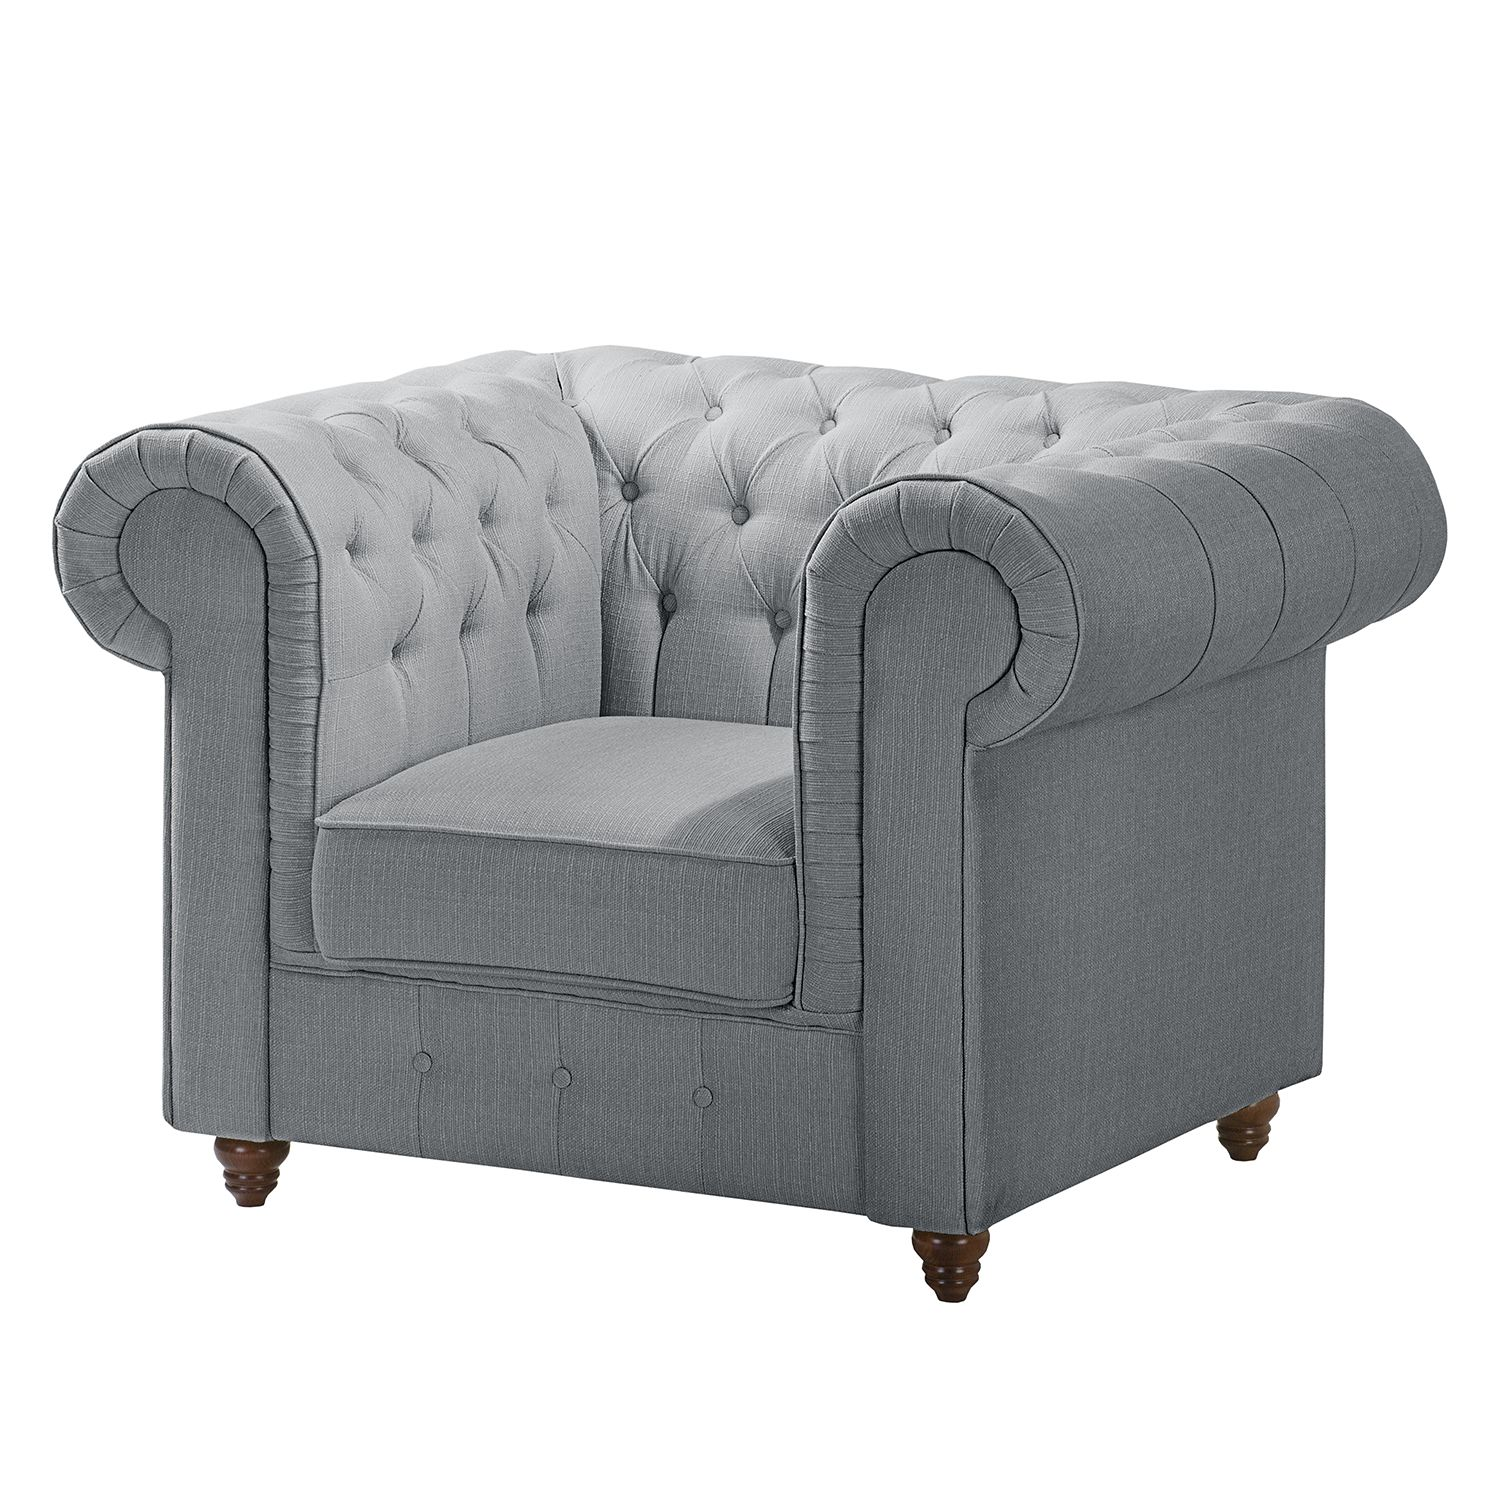 home24 Chesterfield Sessel Pintano | Wohnzimmer > Sessel > Chesterfield Sessel | Grau | Textil | Maison Belfort